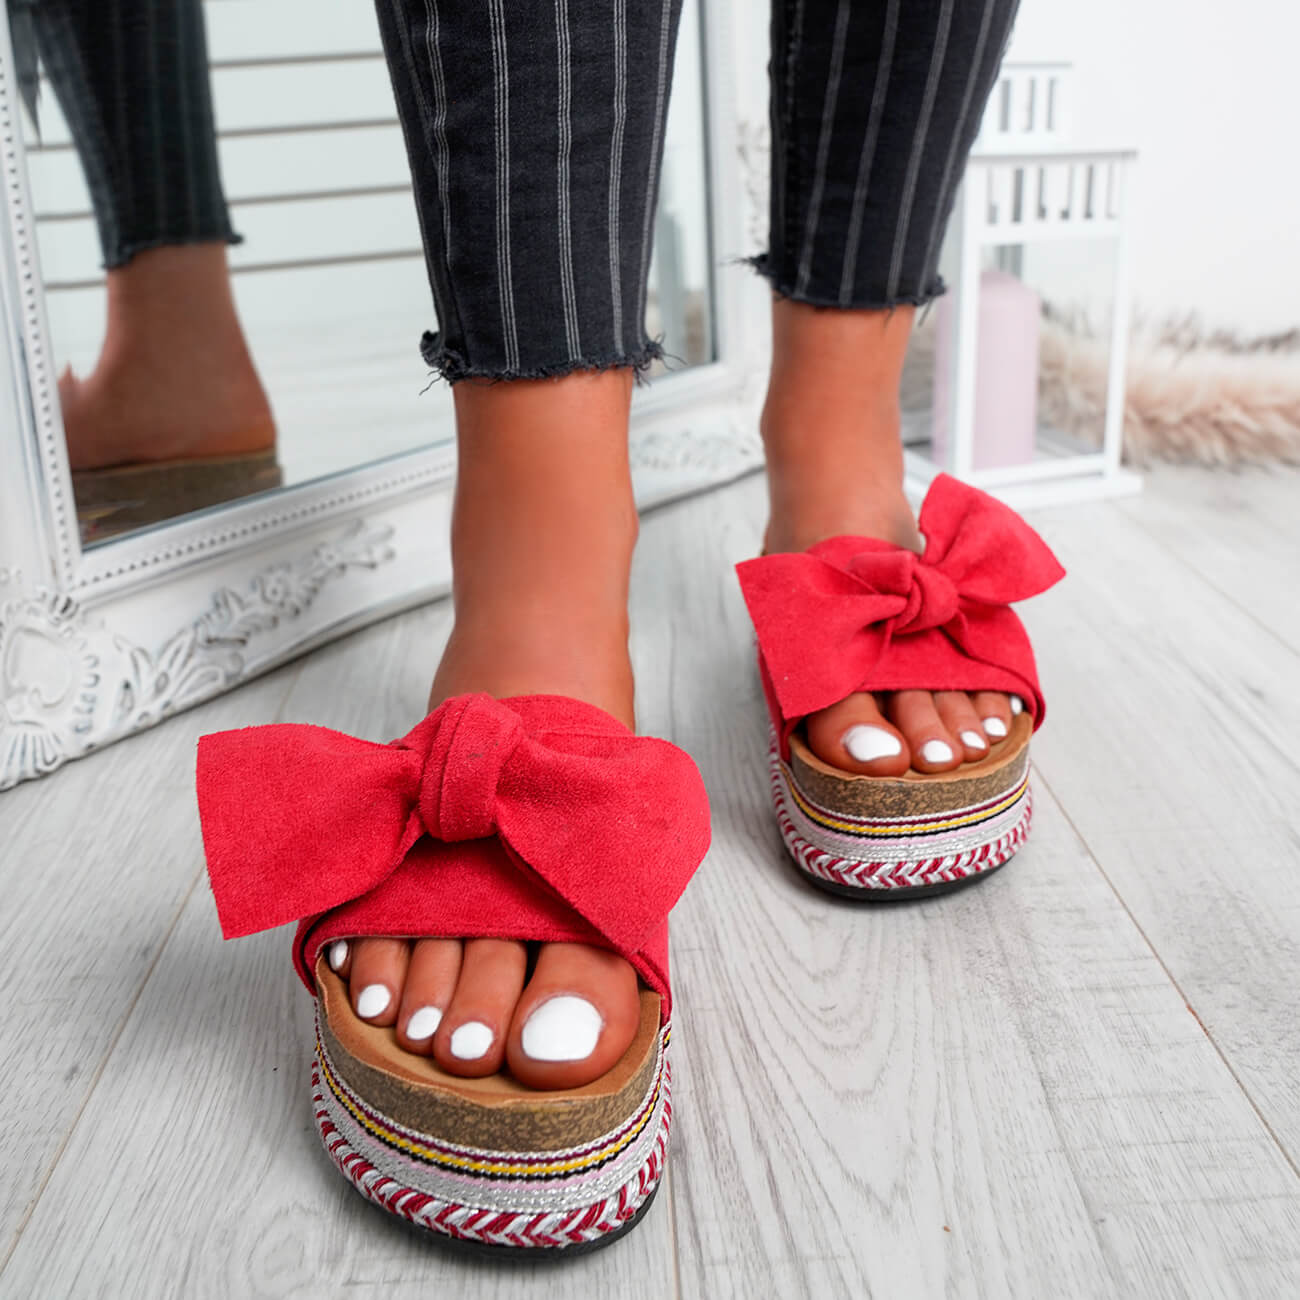 WOMENS-LADIES-BOW-SLIDERS-SLIP-ON-FLATFORMS-SUMMER-PARTY-SANDALS-SHOES-SIZE thumbnail 22